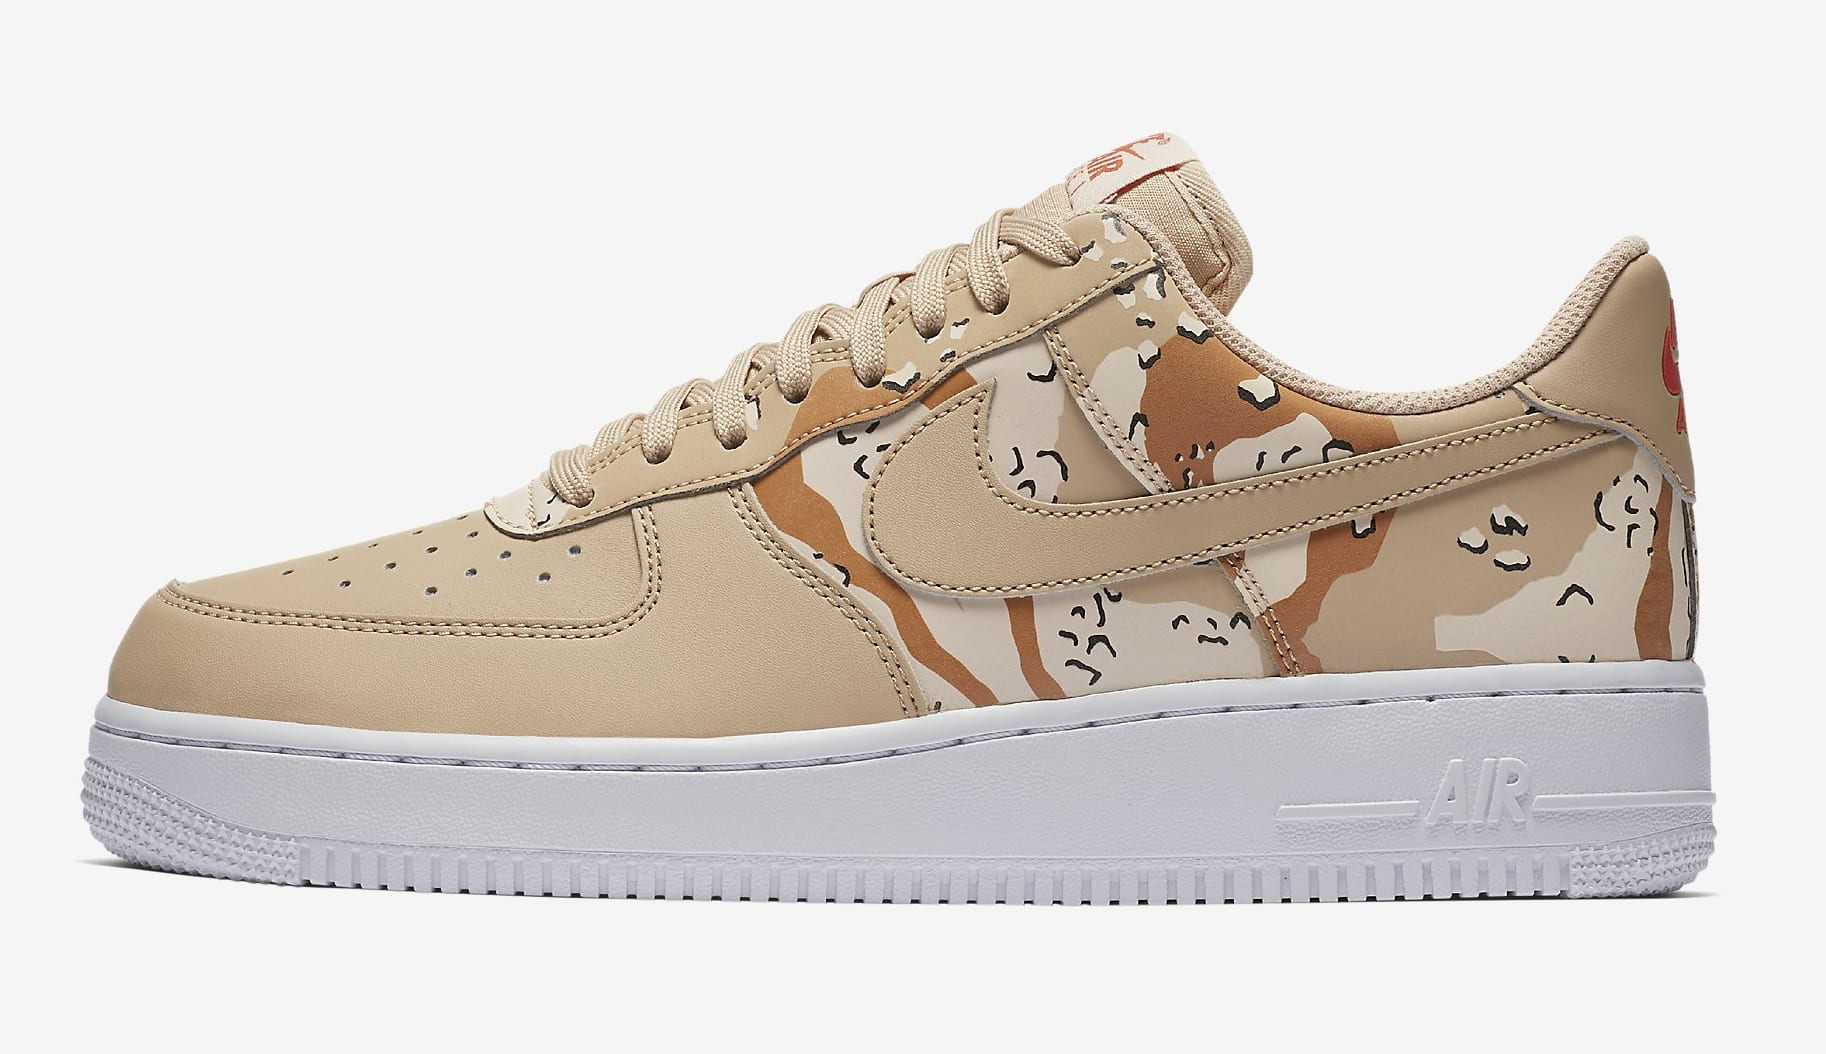 Nike Air Force 1 Low 'Country Camo' 823511-202 (Lateral)